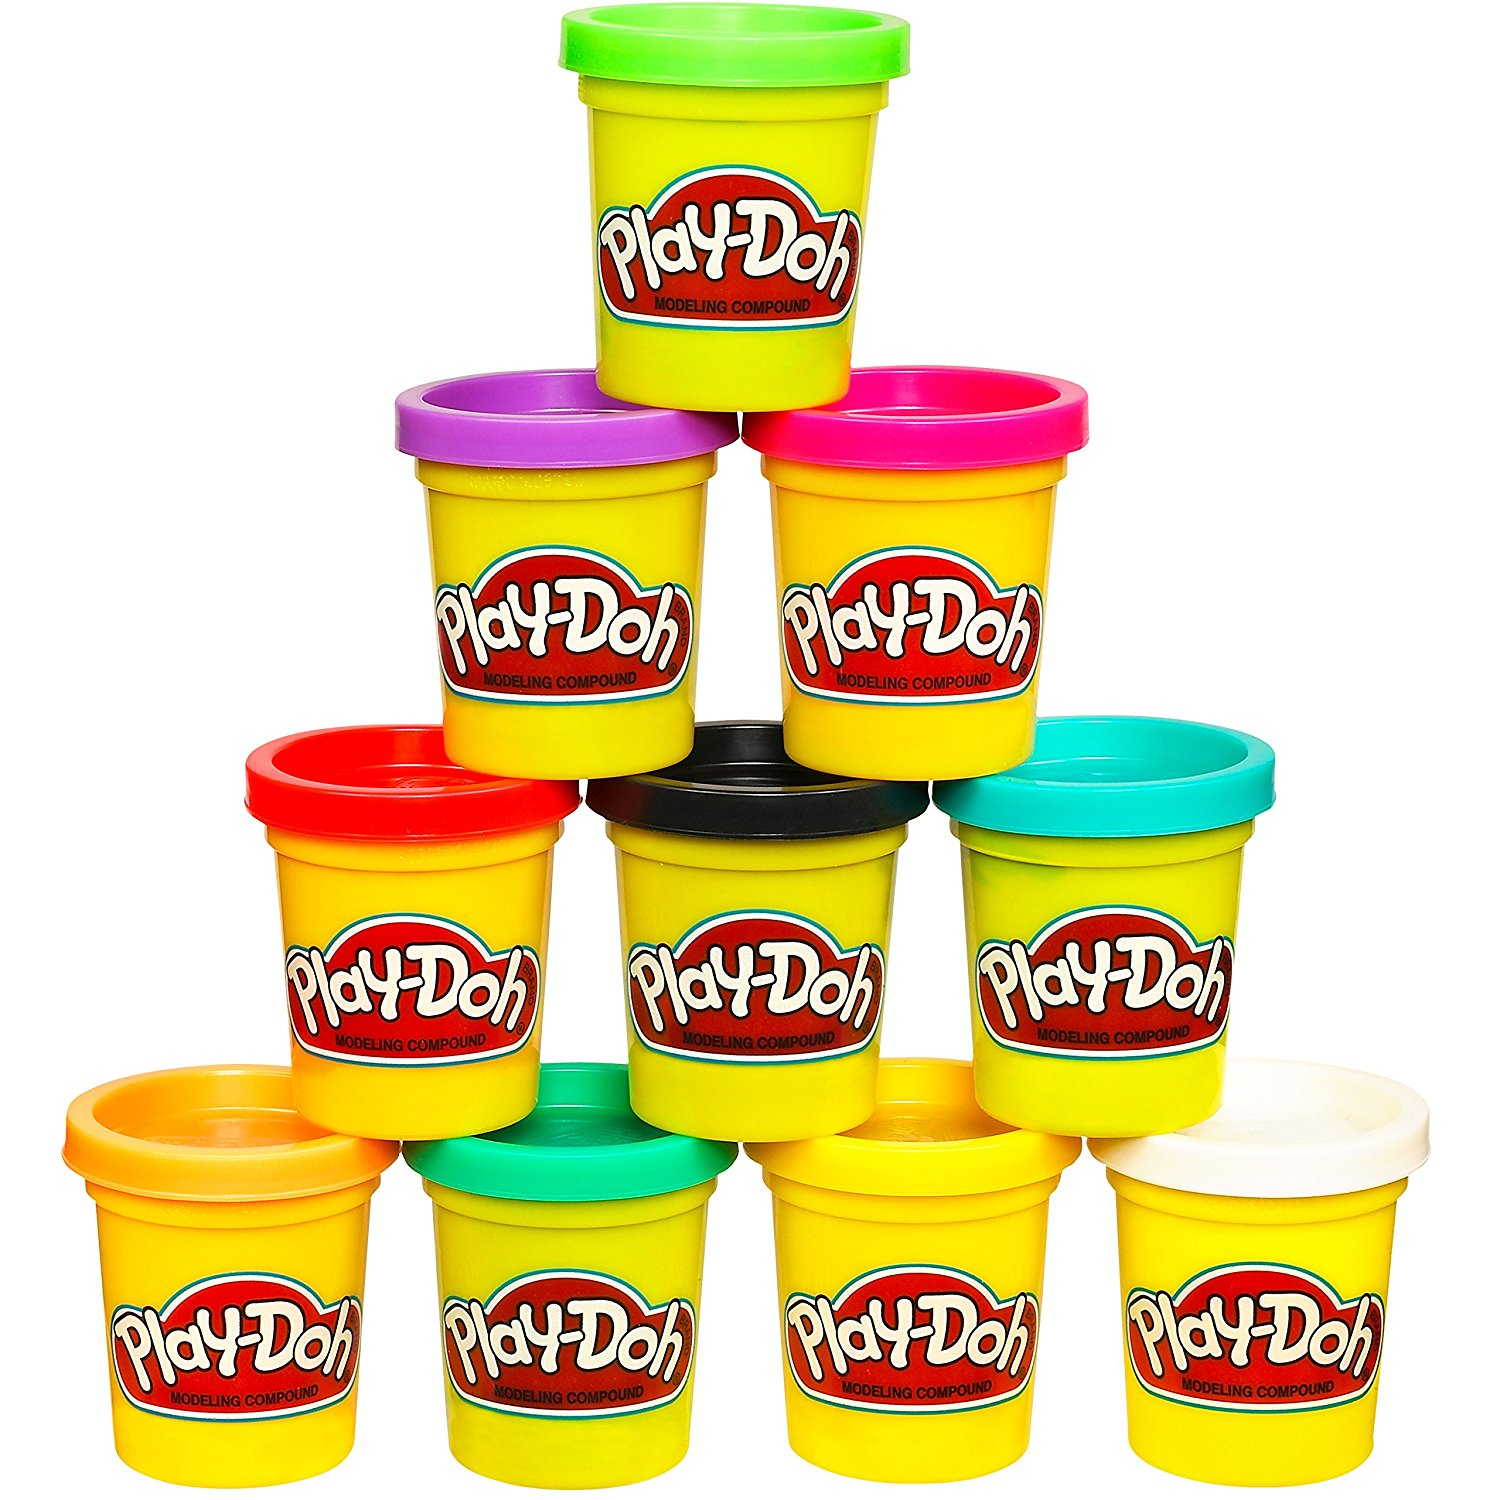 Play-Doh is a great gift even if you're a broke student